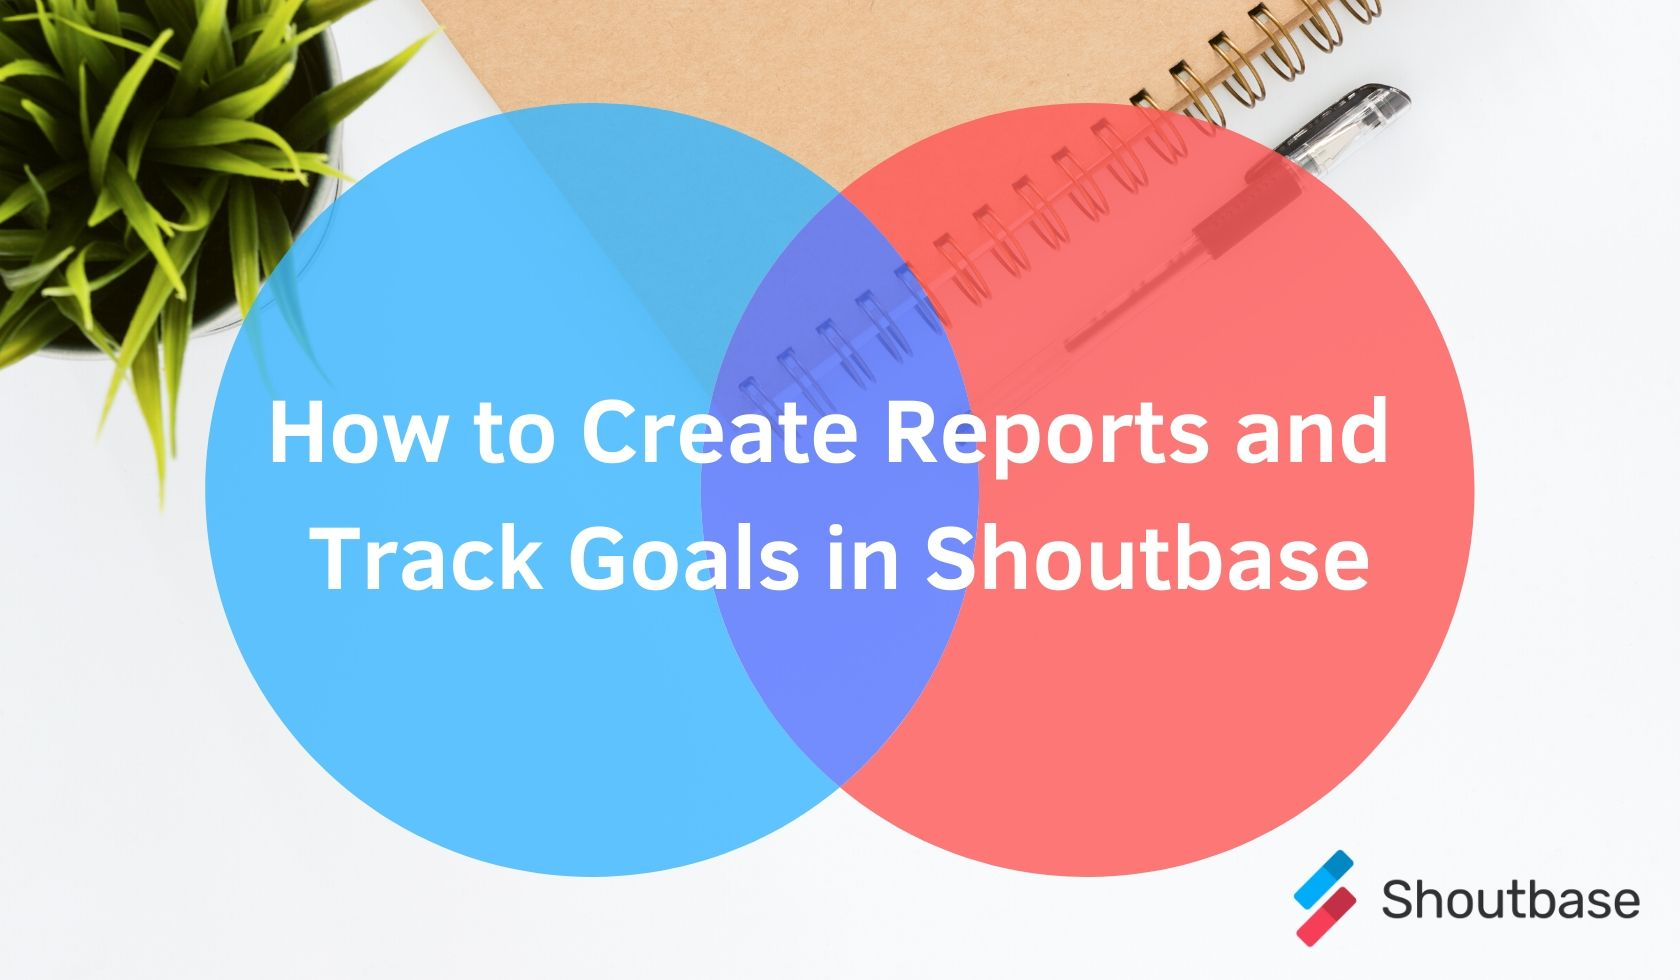 How to Create Reports and Track Goals in Shoutbase